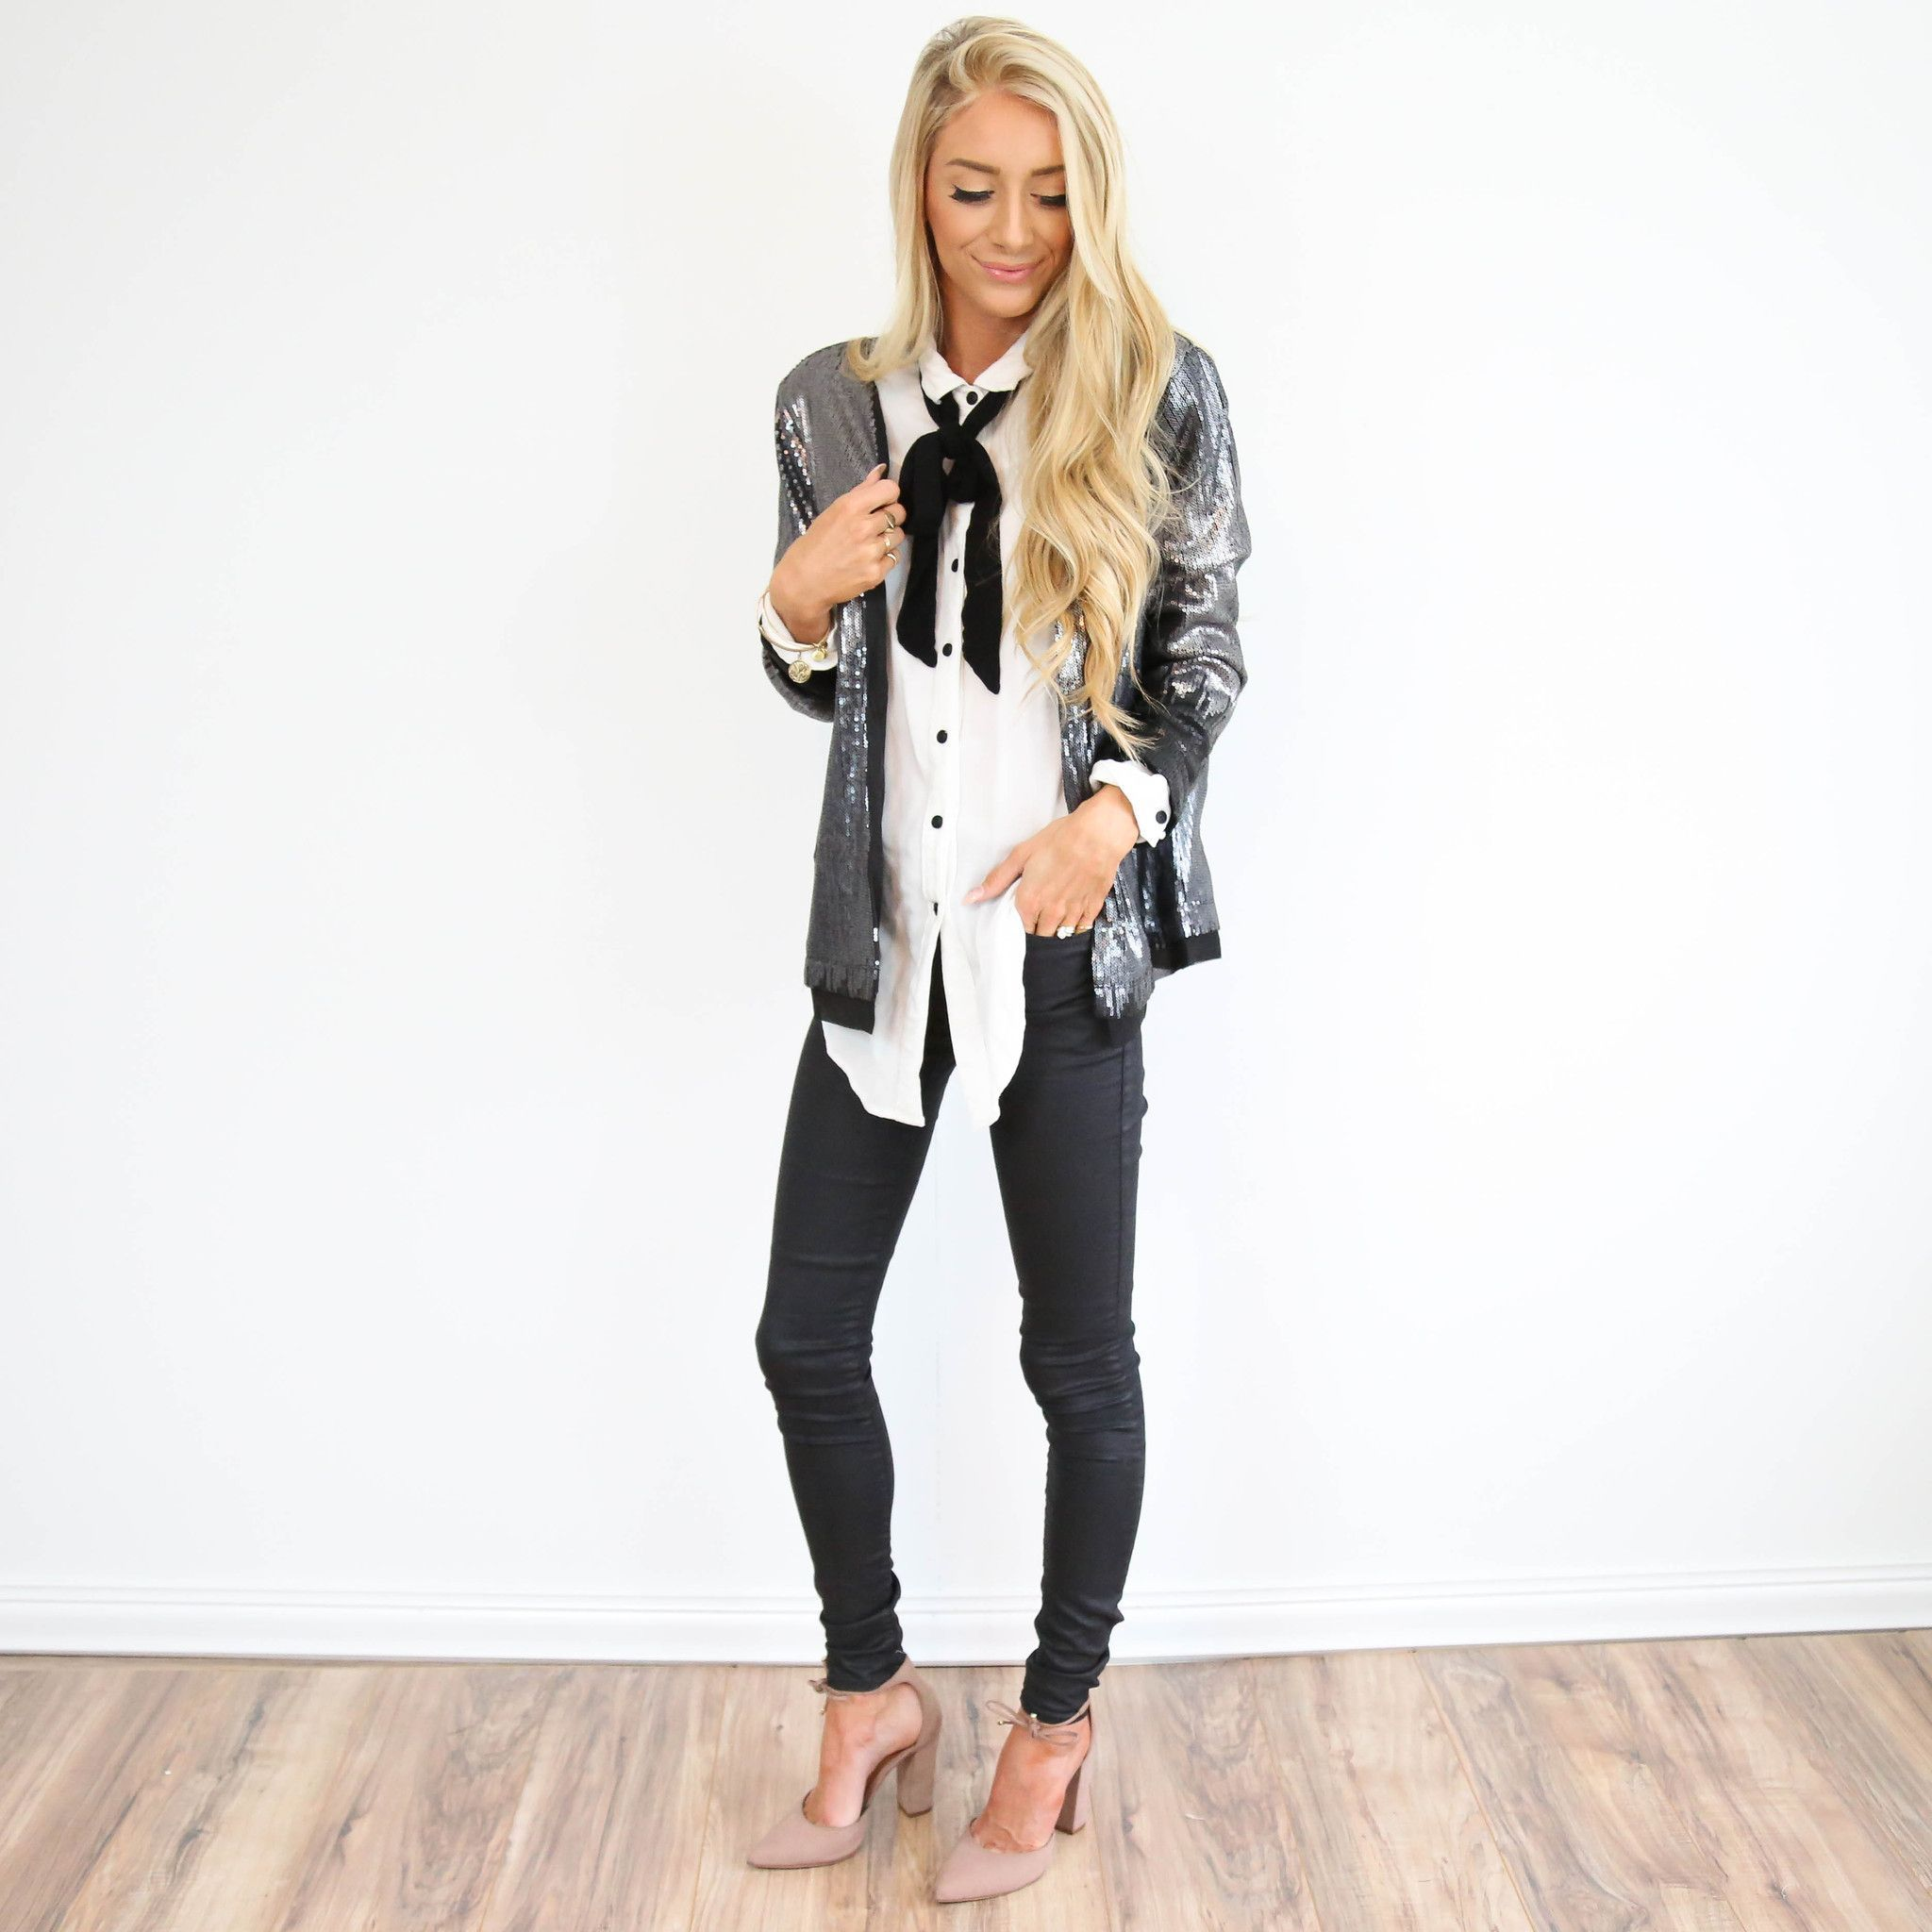 This jacket is such a great piece for the season! This is my outfit for new years! Hence the name :) I'm 5'3 wearing size small 100% Polyester dry clean only